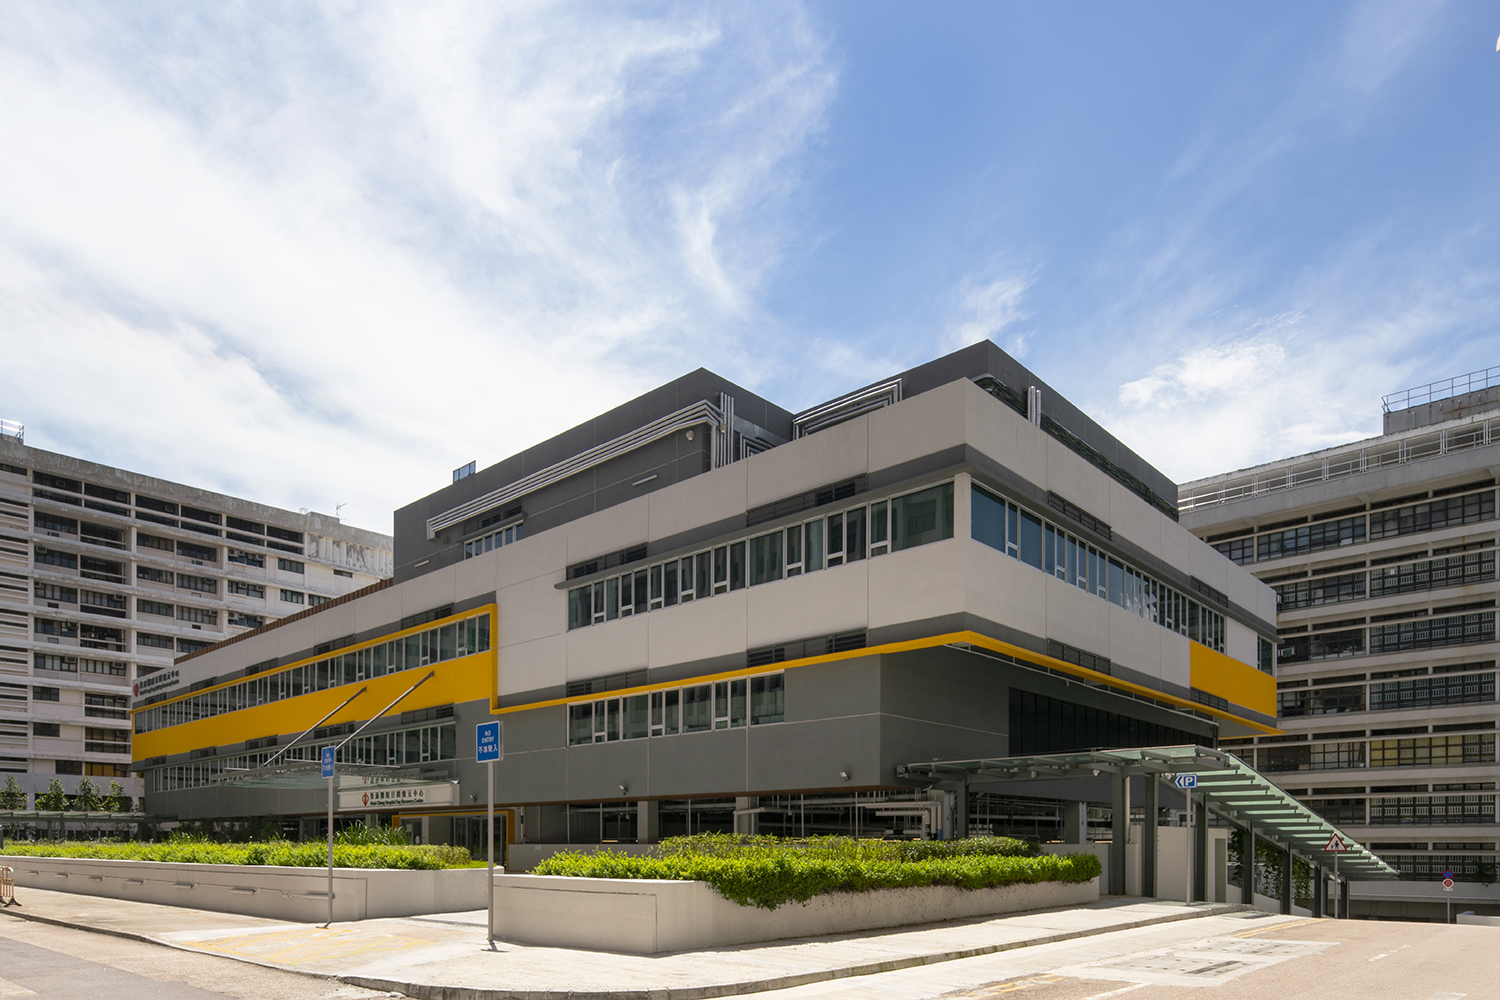 KWAI CHUNG HOSPITAL DAY RECOVERY CENTRE